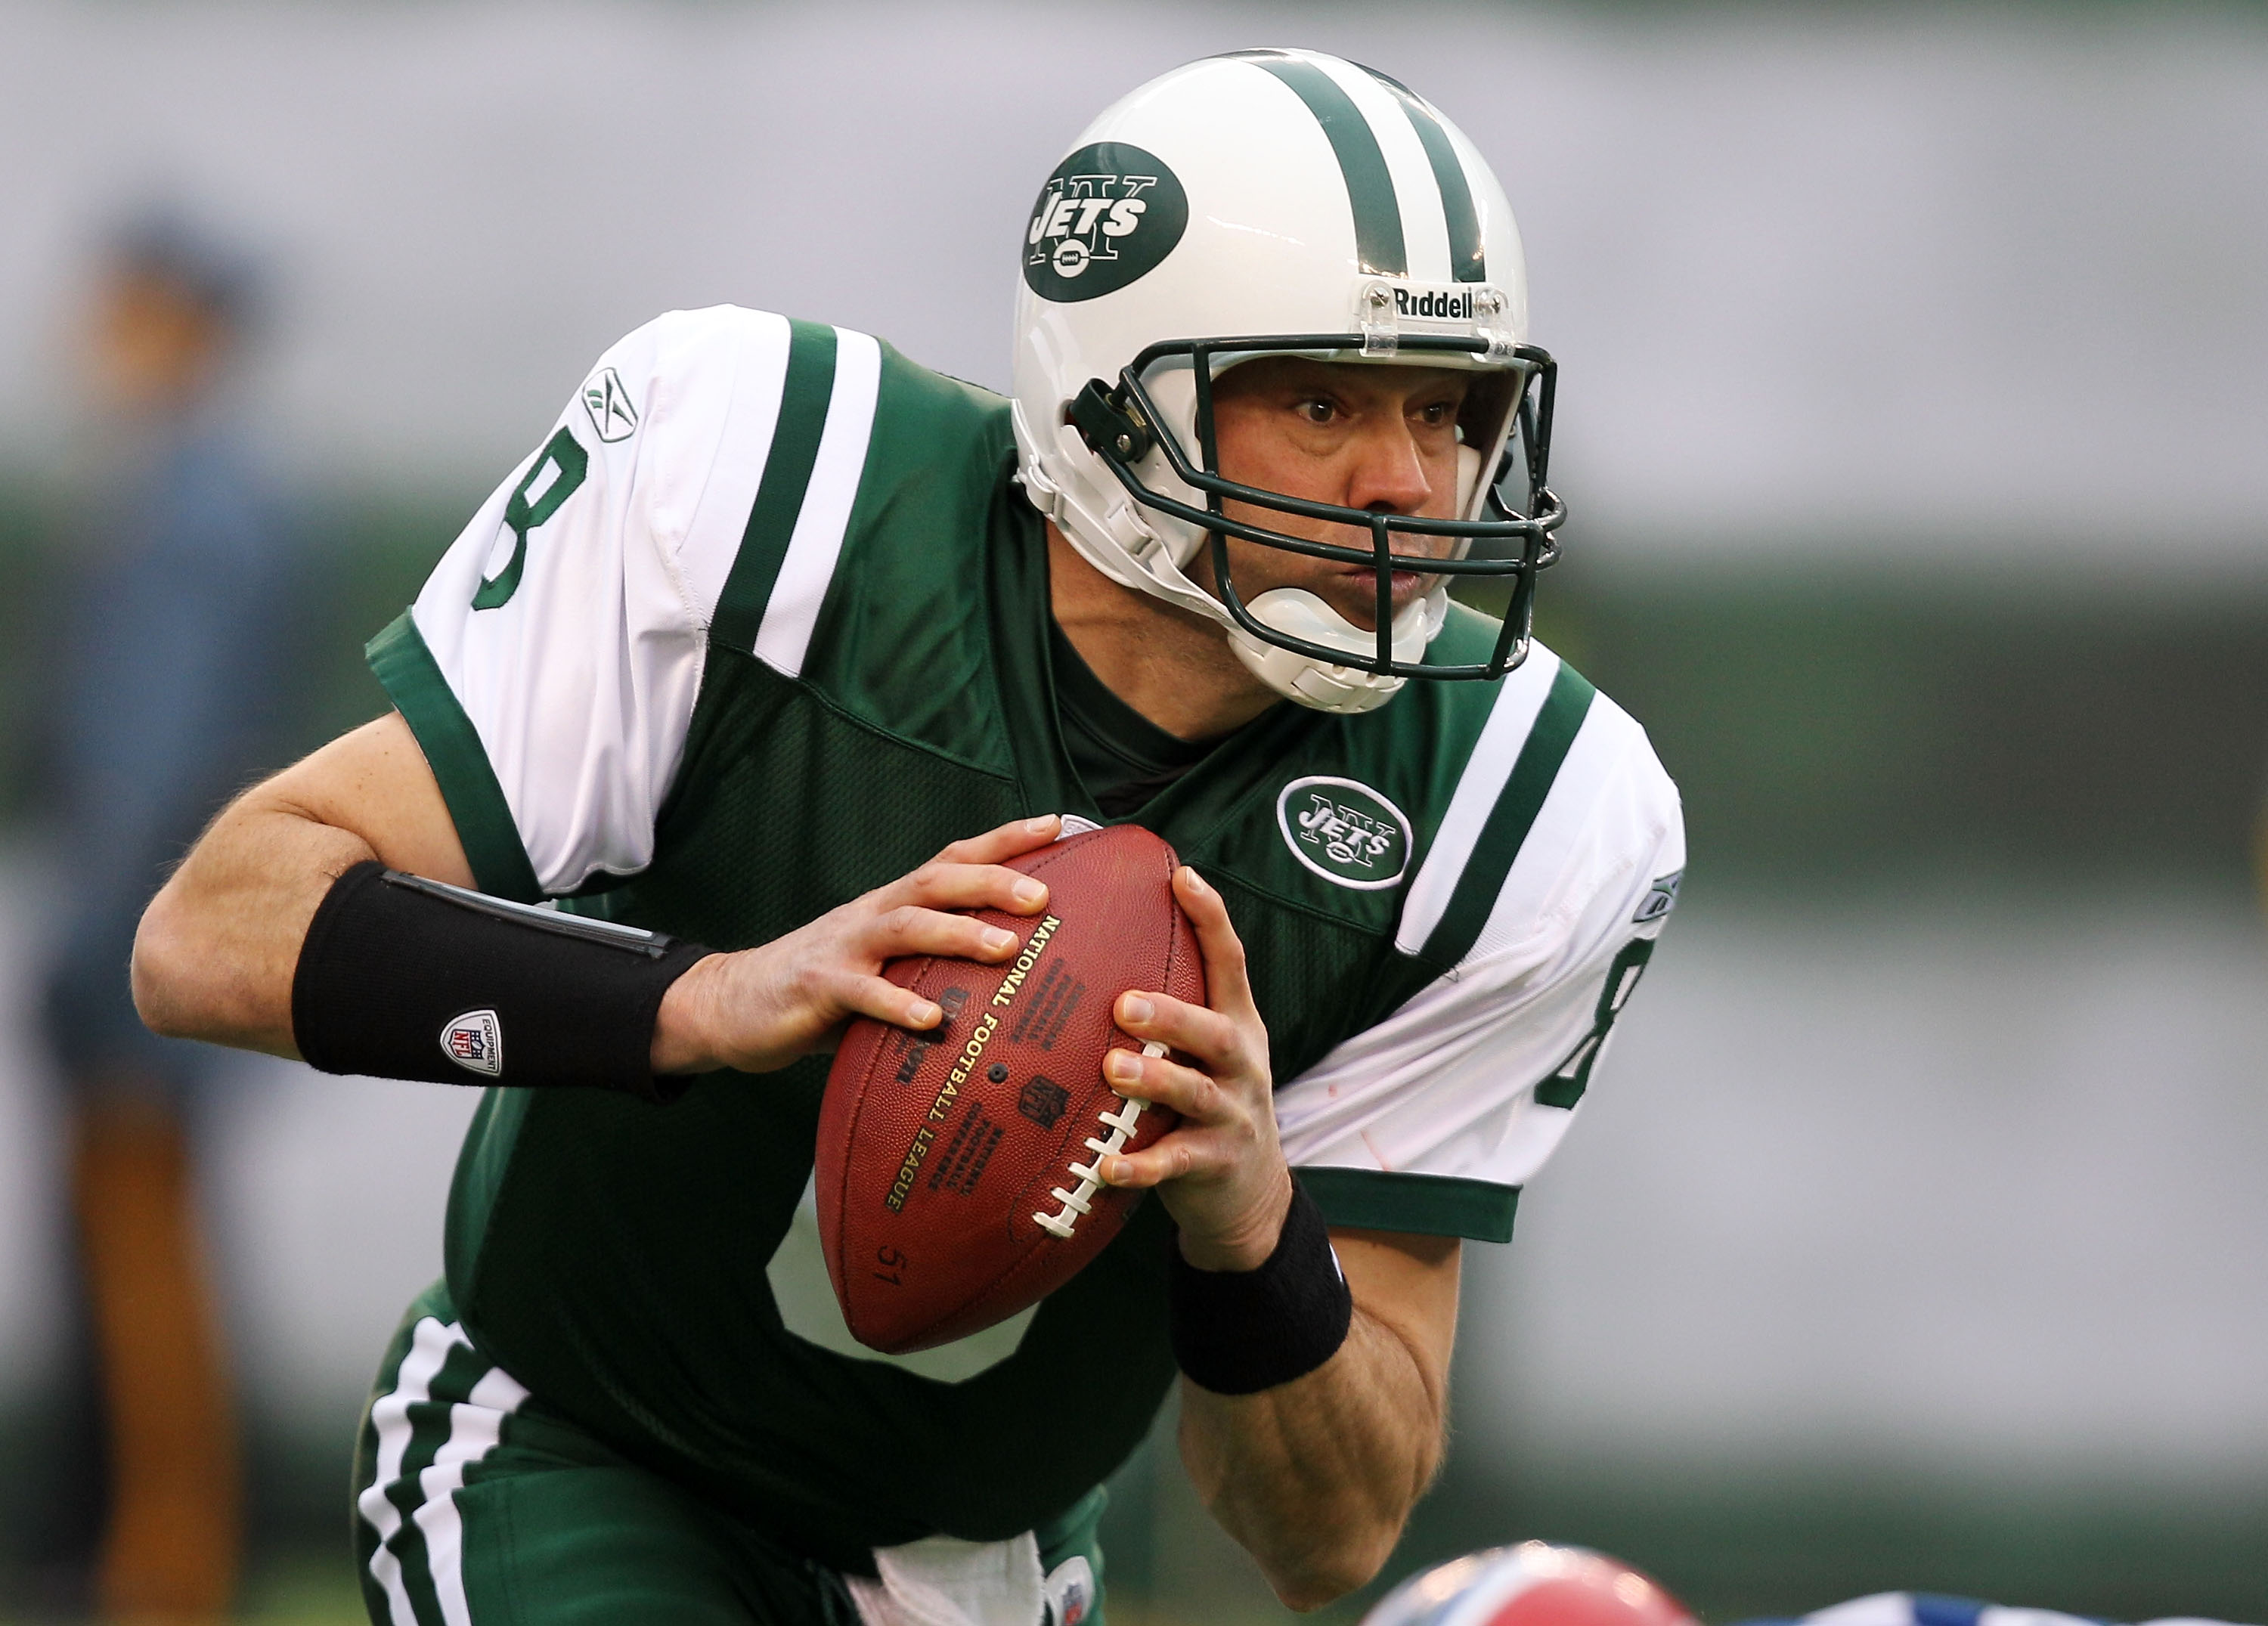 EAST RUTHERFORD, NJ - JANUARY 02:  Mark Brunell #8 of the New York Jets scrambles against the Buffalo Bills at New Meadowlands Stadium on January 2, 2011 in East Rutherford, New Jersey.  (Photo by Michael Heiman/Getty Images)